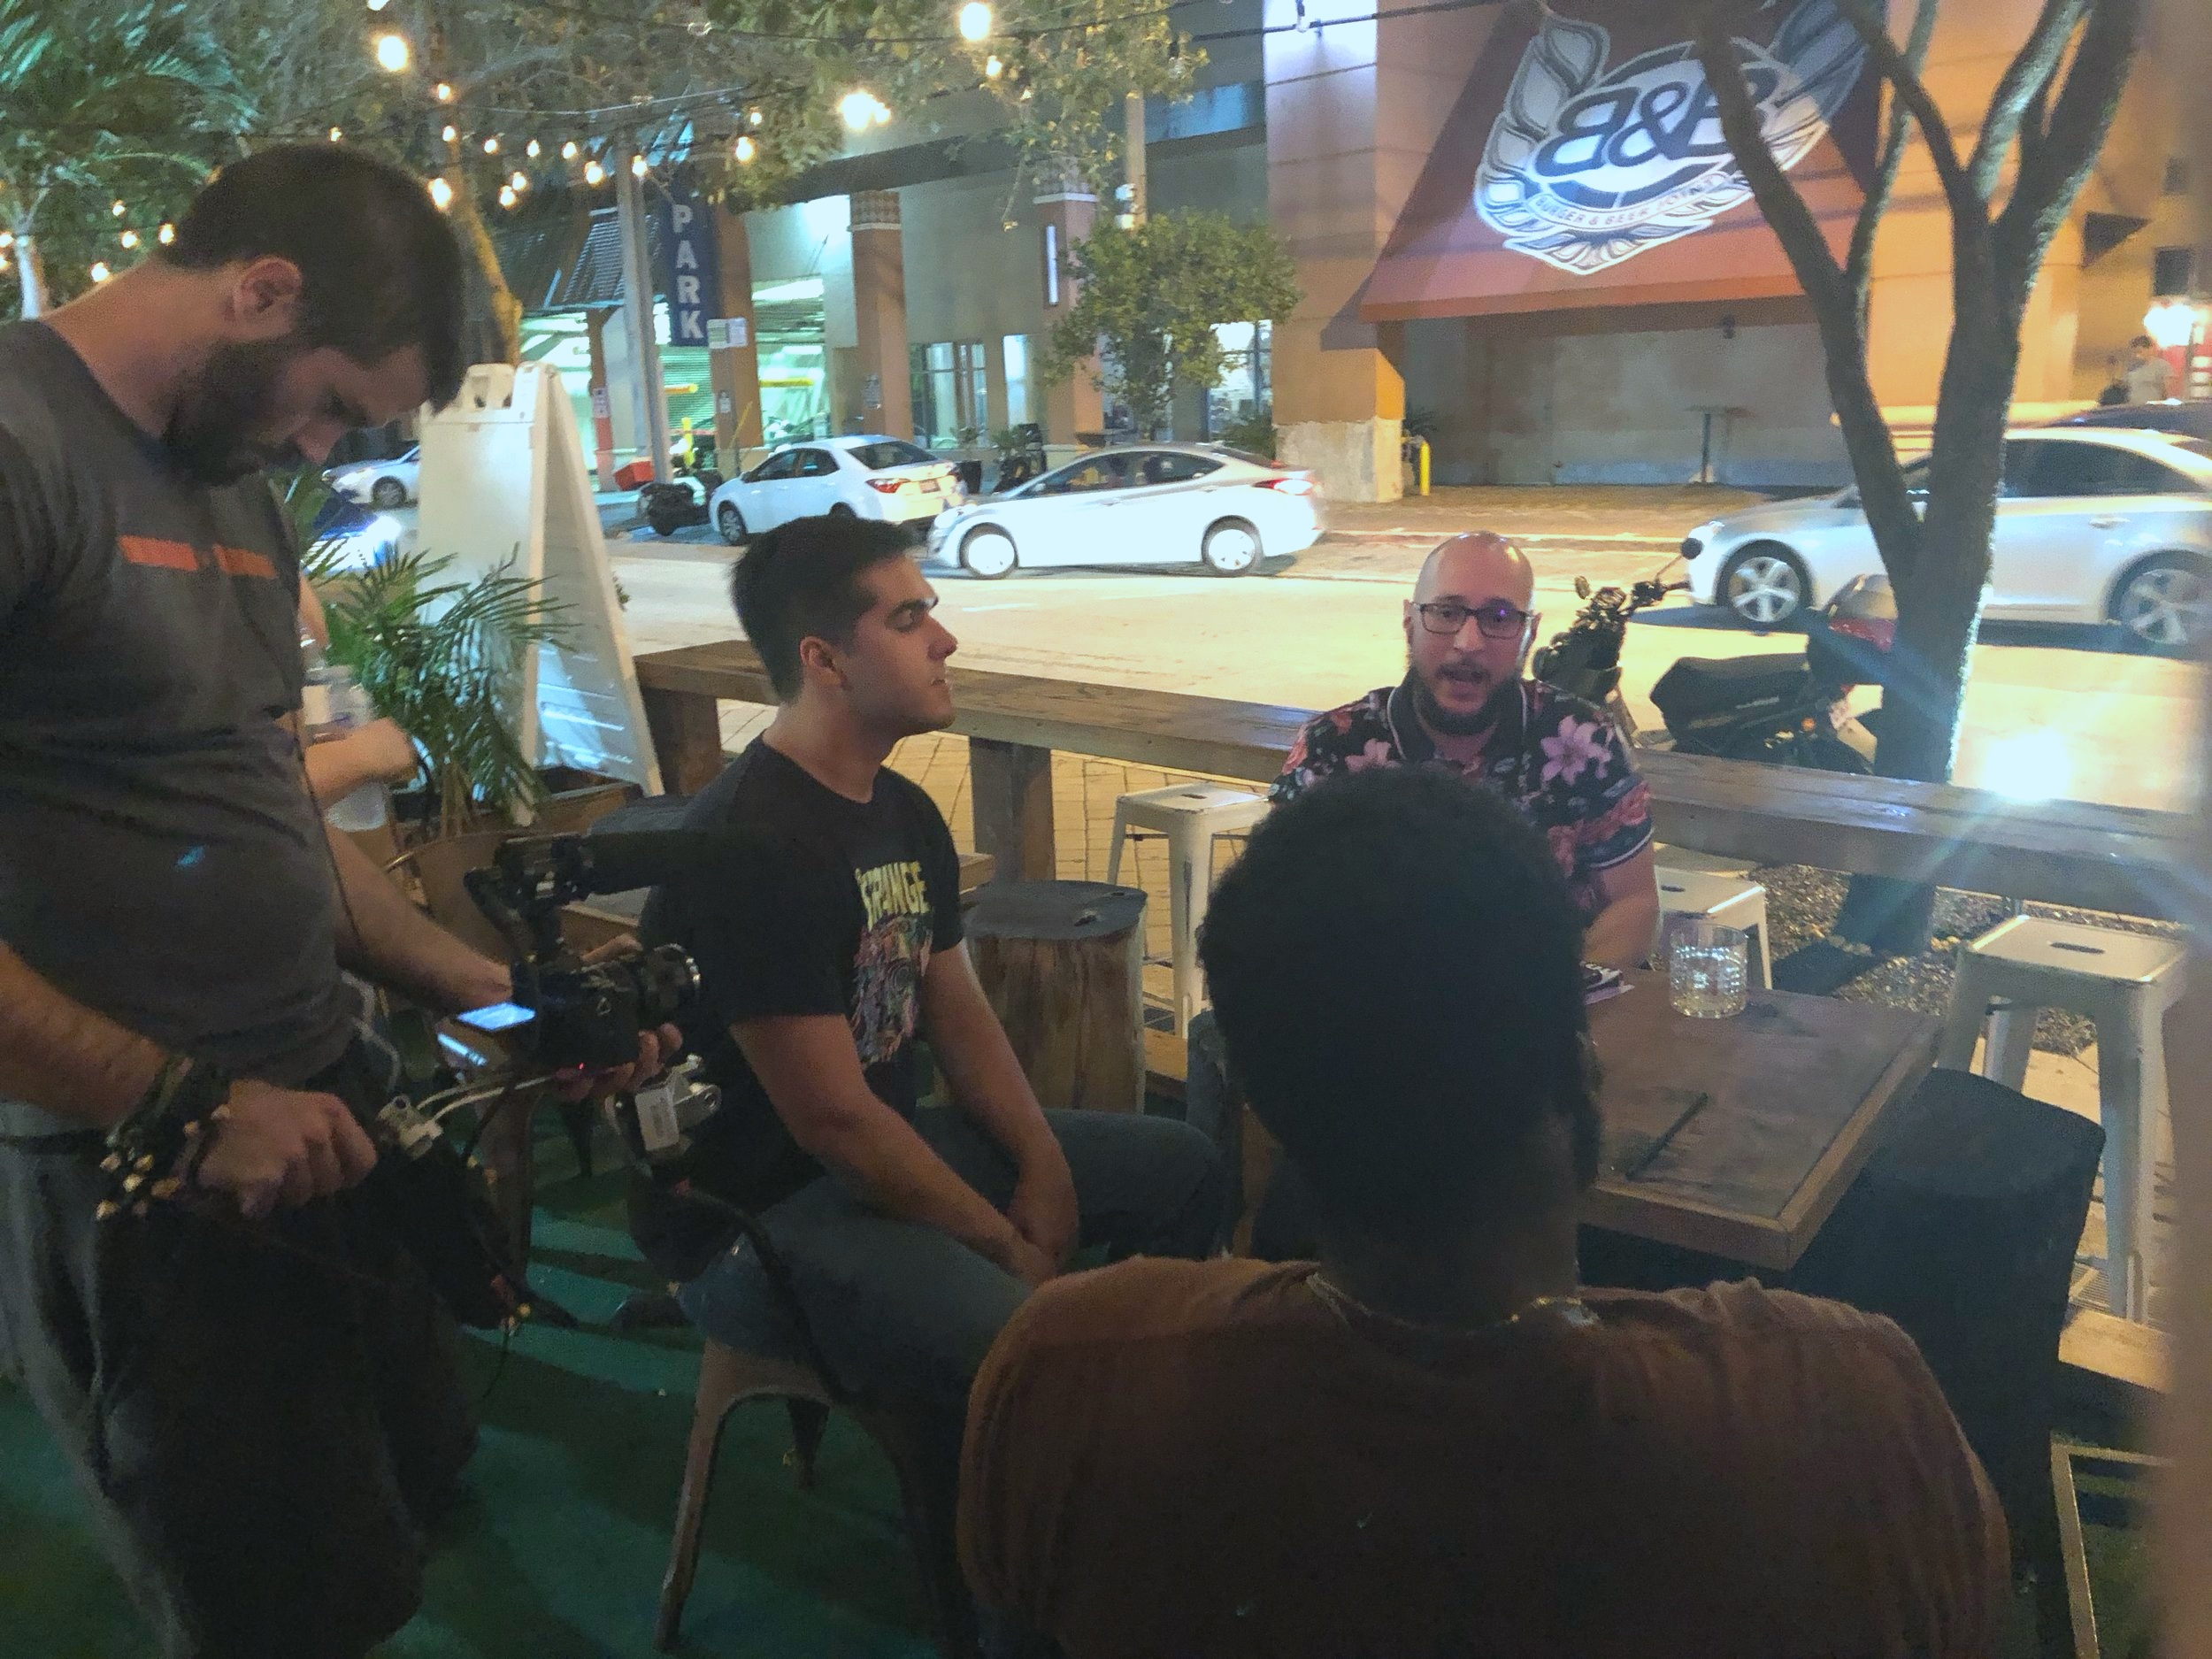 Cinematographer Greg Kerrick films Sebastian Mattar & Rudy Wilson while they chat with friends and comics outside of a Miami Comedy show at Redbar in Brickell, Miami.